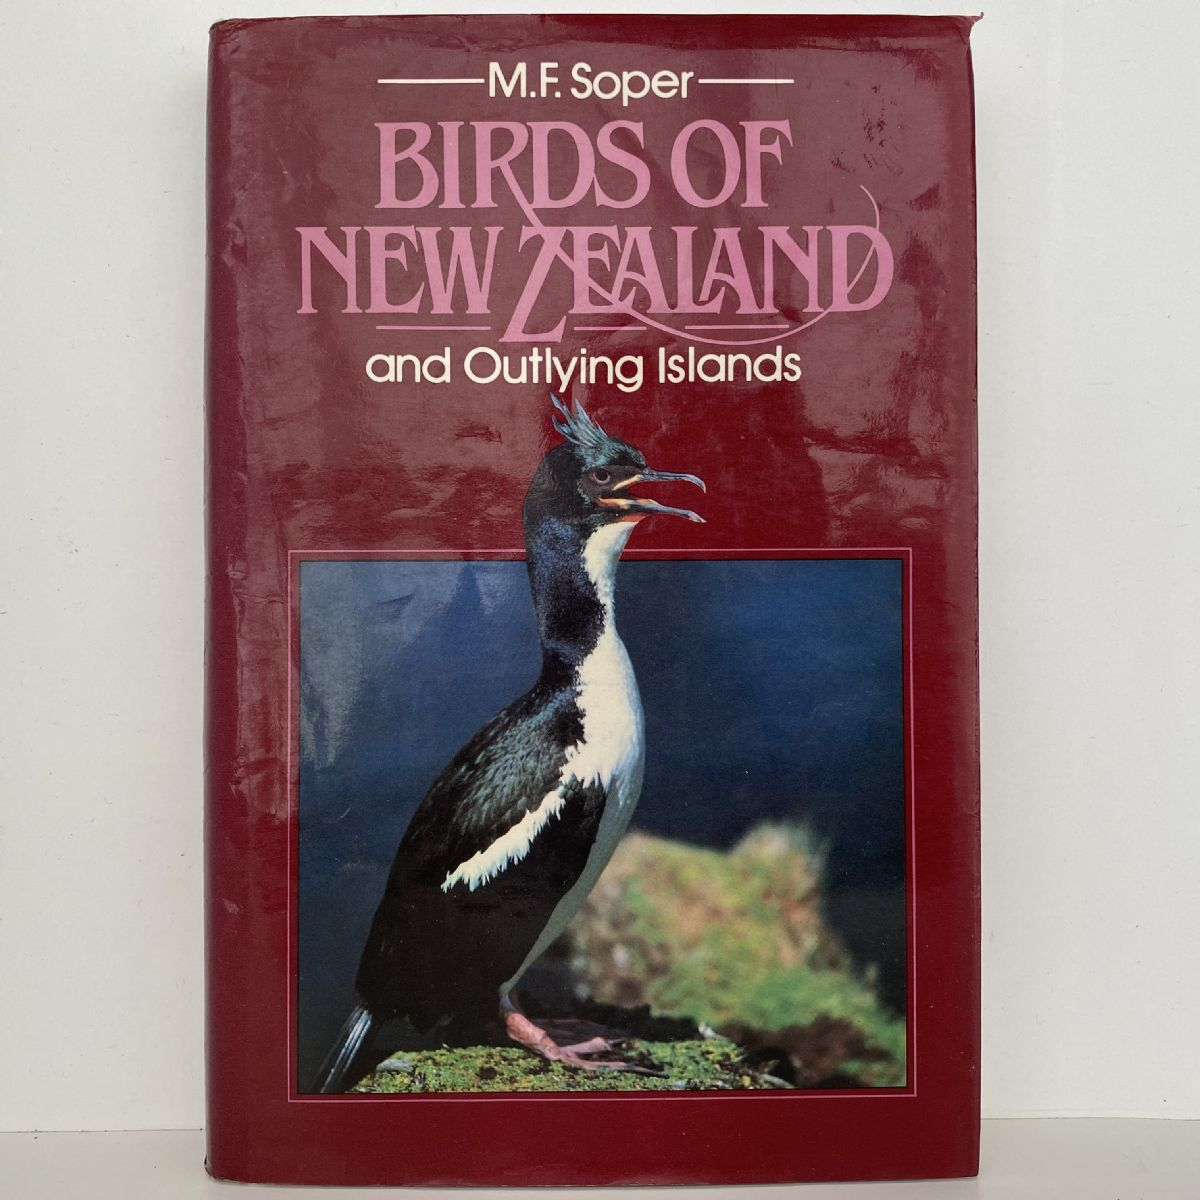 BIRDS OF NEW ZEALAND and Outlying Islands